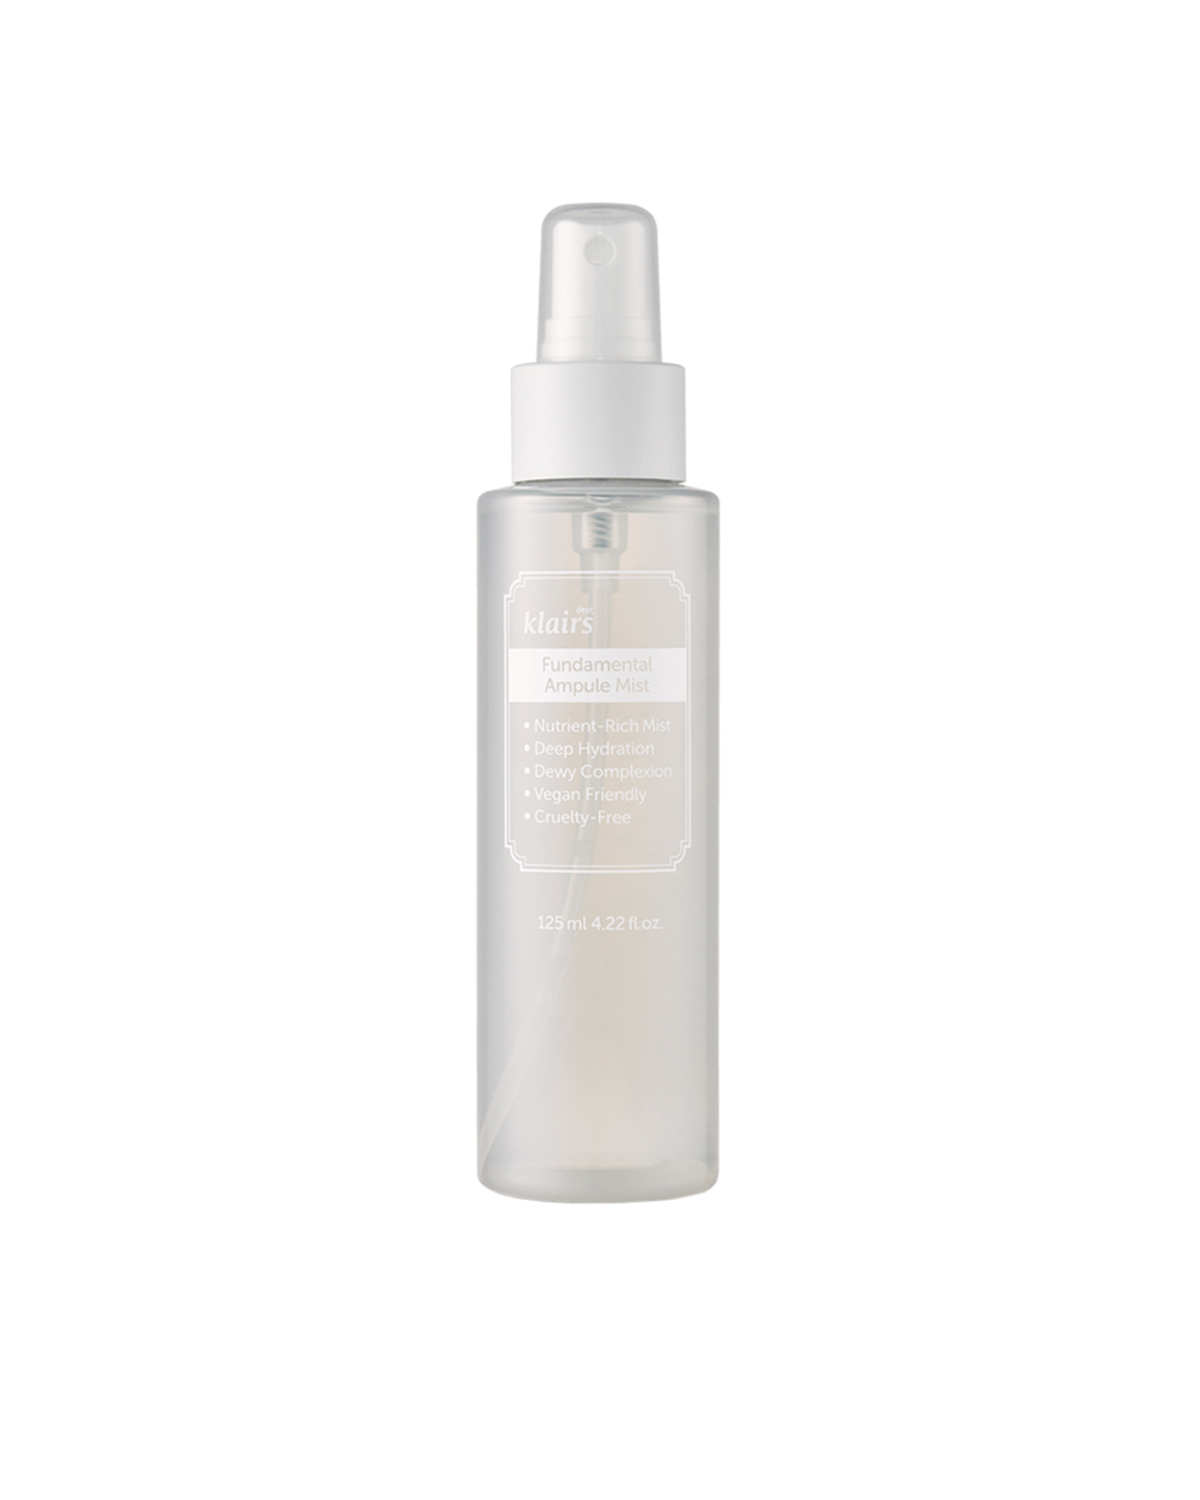 KLAIRS Fundamental Ampule Mist 125 ml